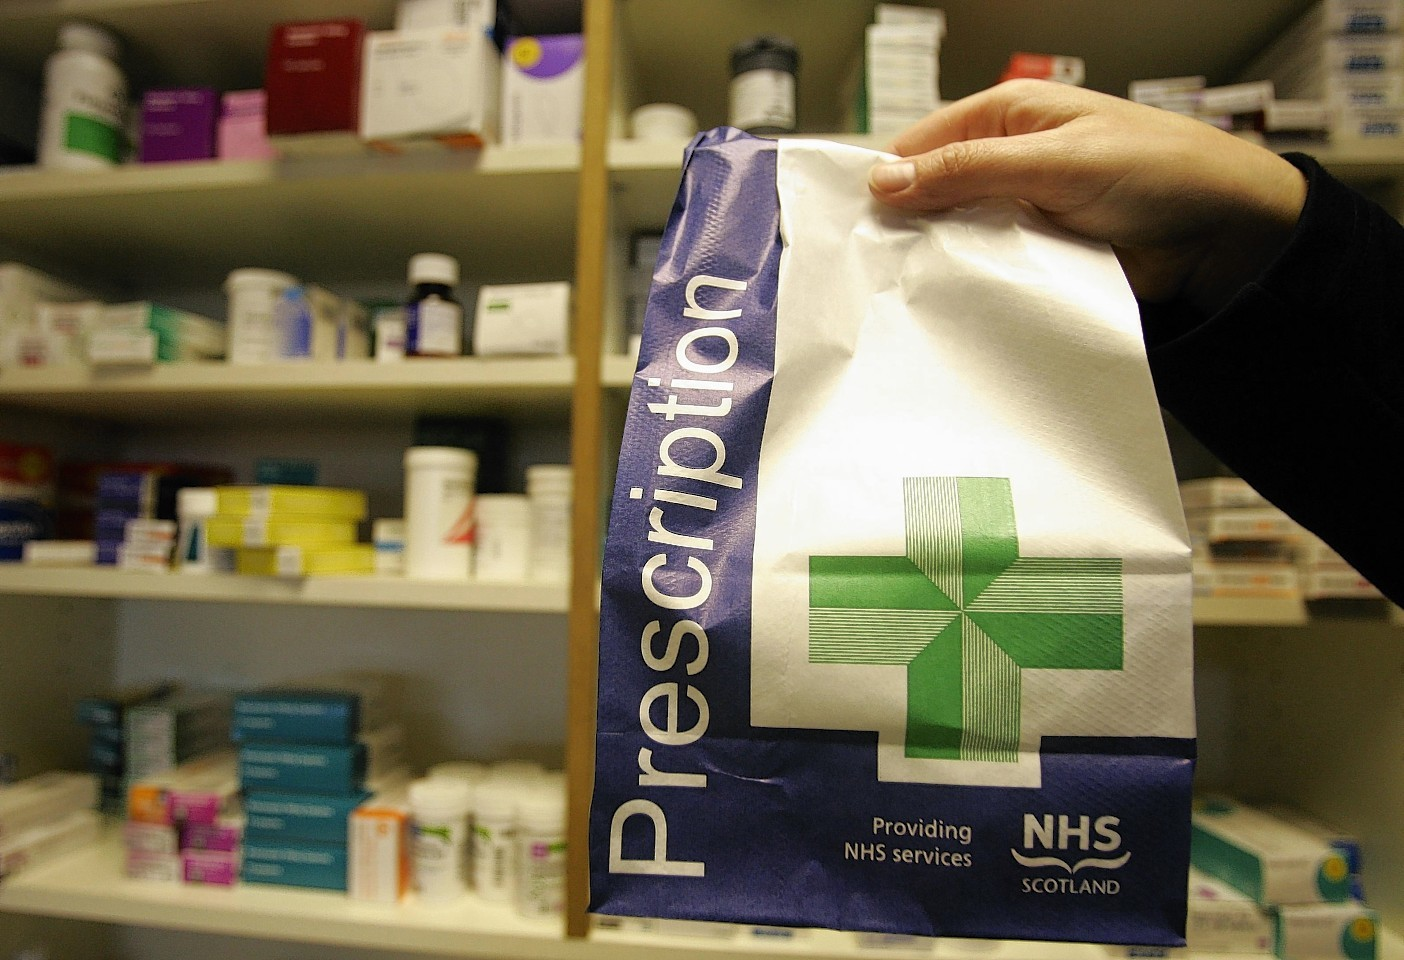 The new service could free up thousands of GP appointments, health chiefs say.